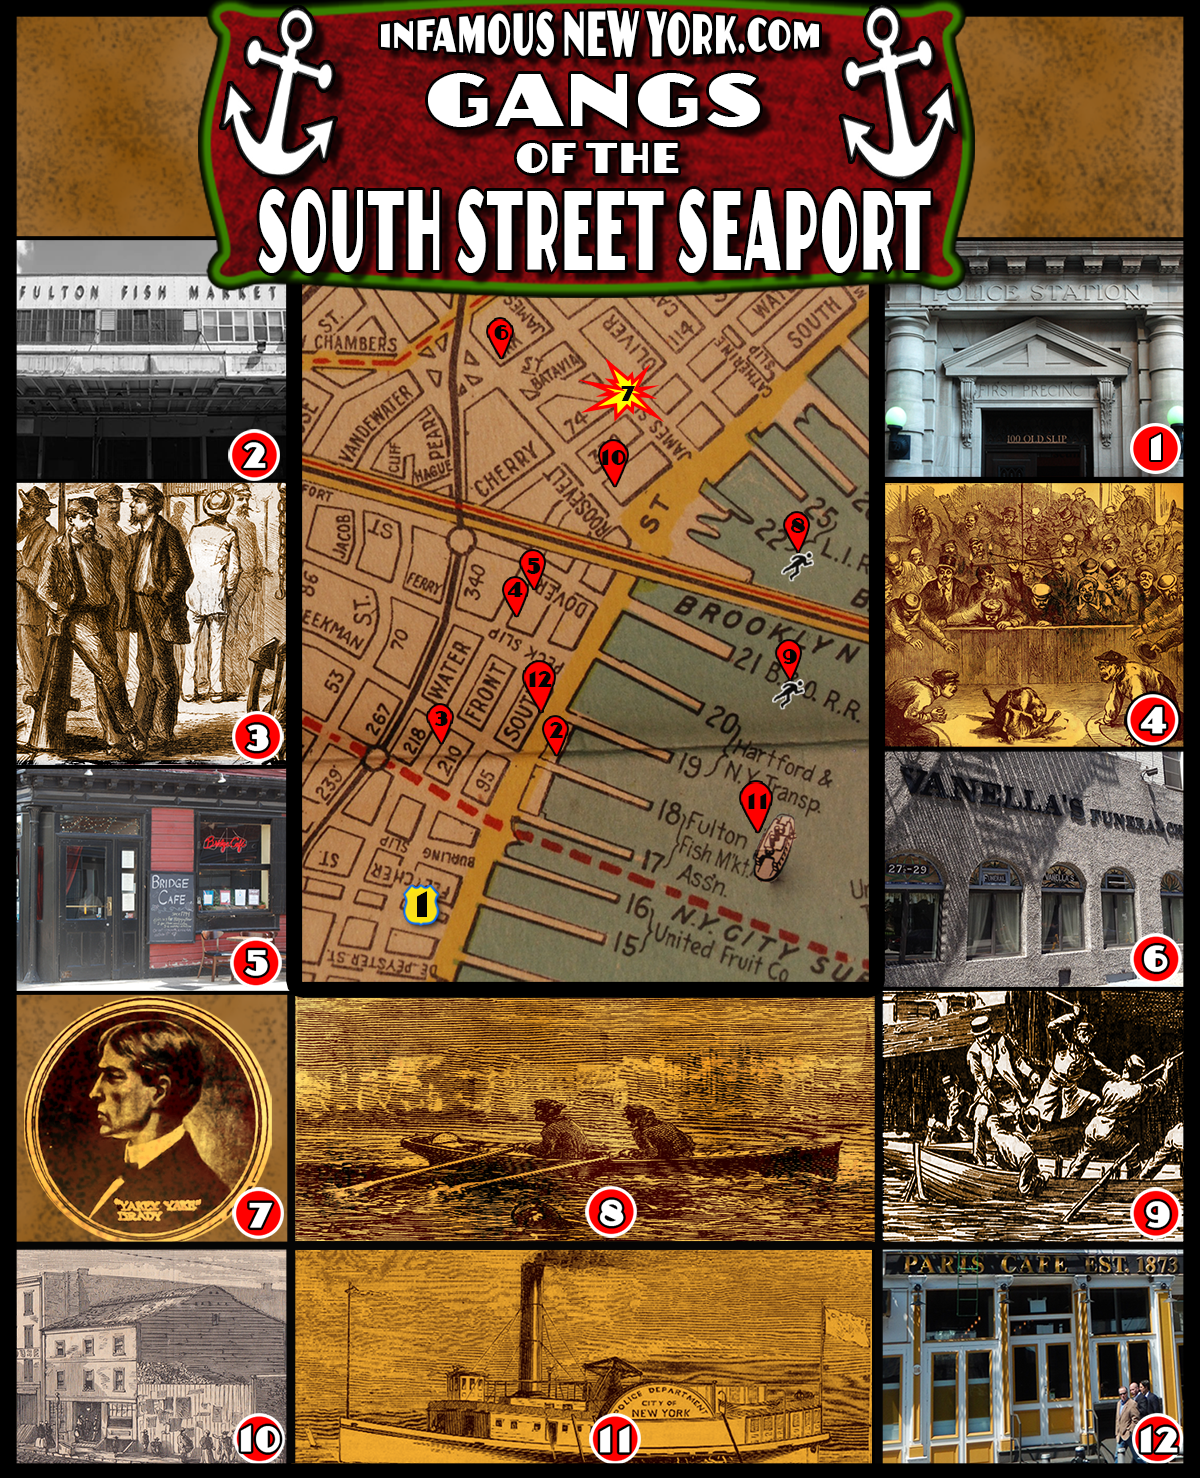 South Street Seaport Infamous New York - Nyc rat map